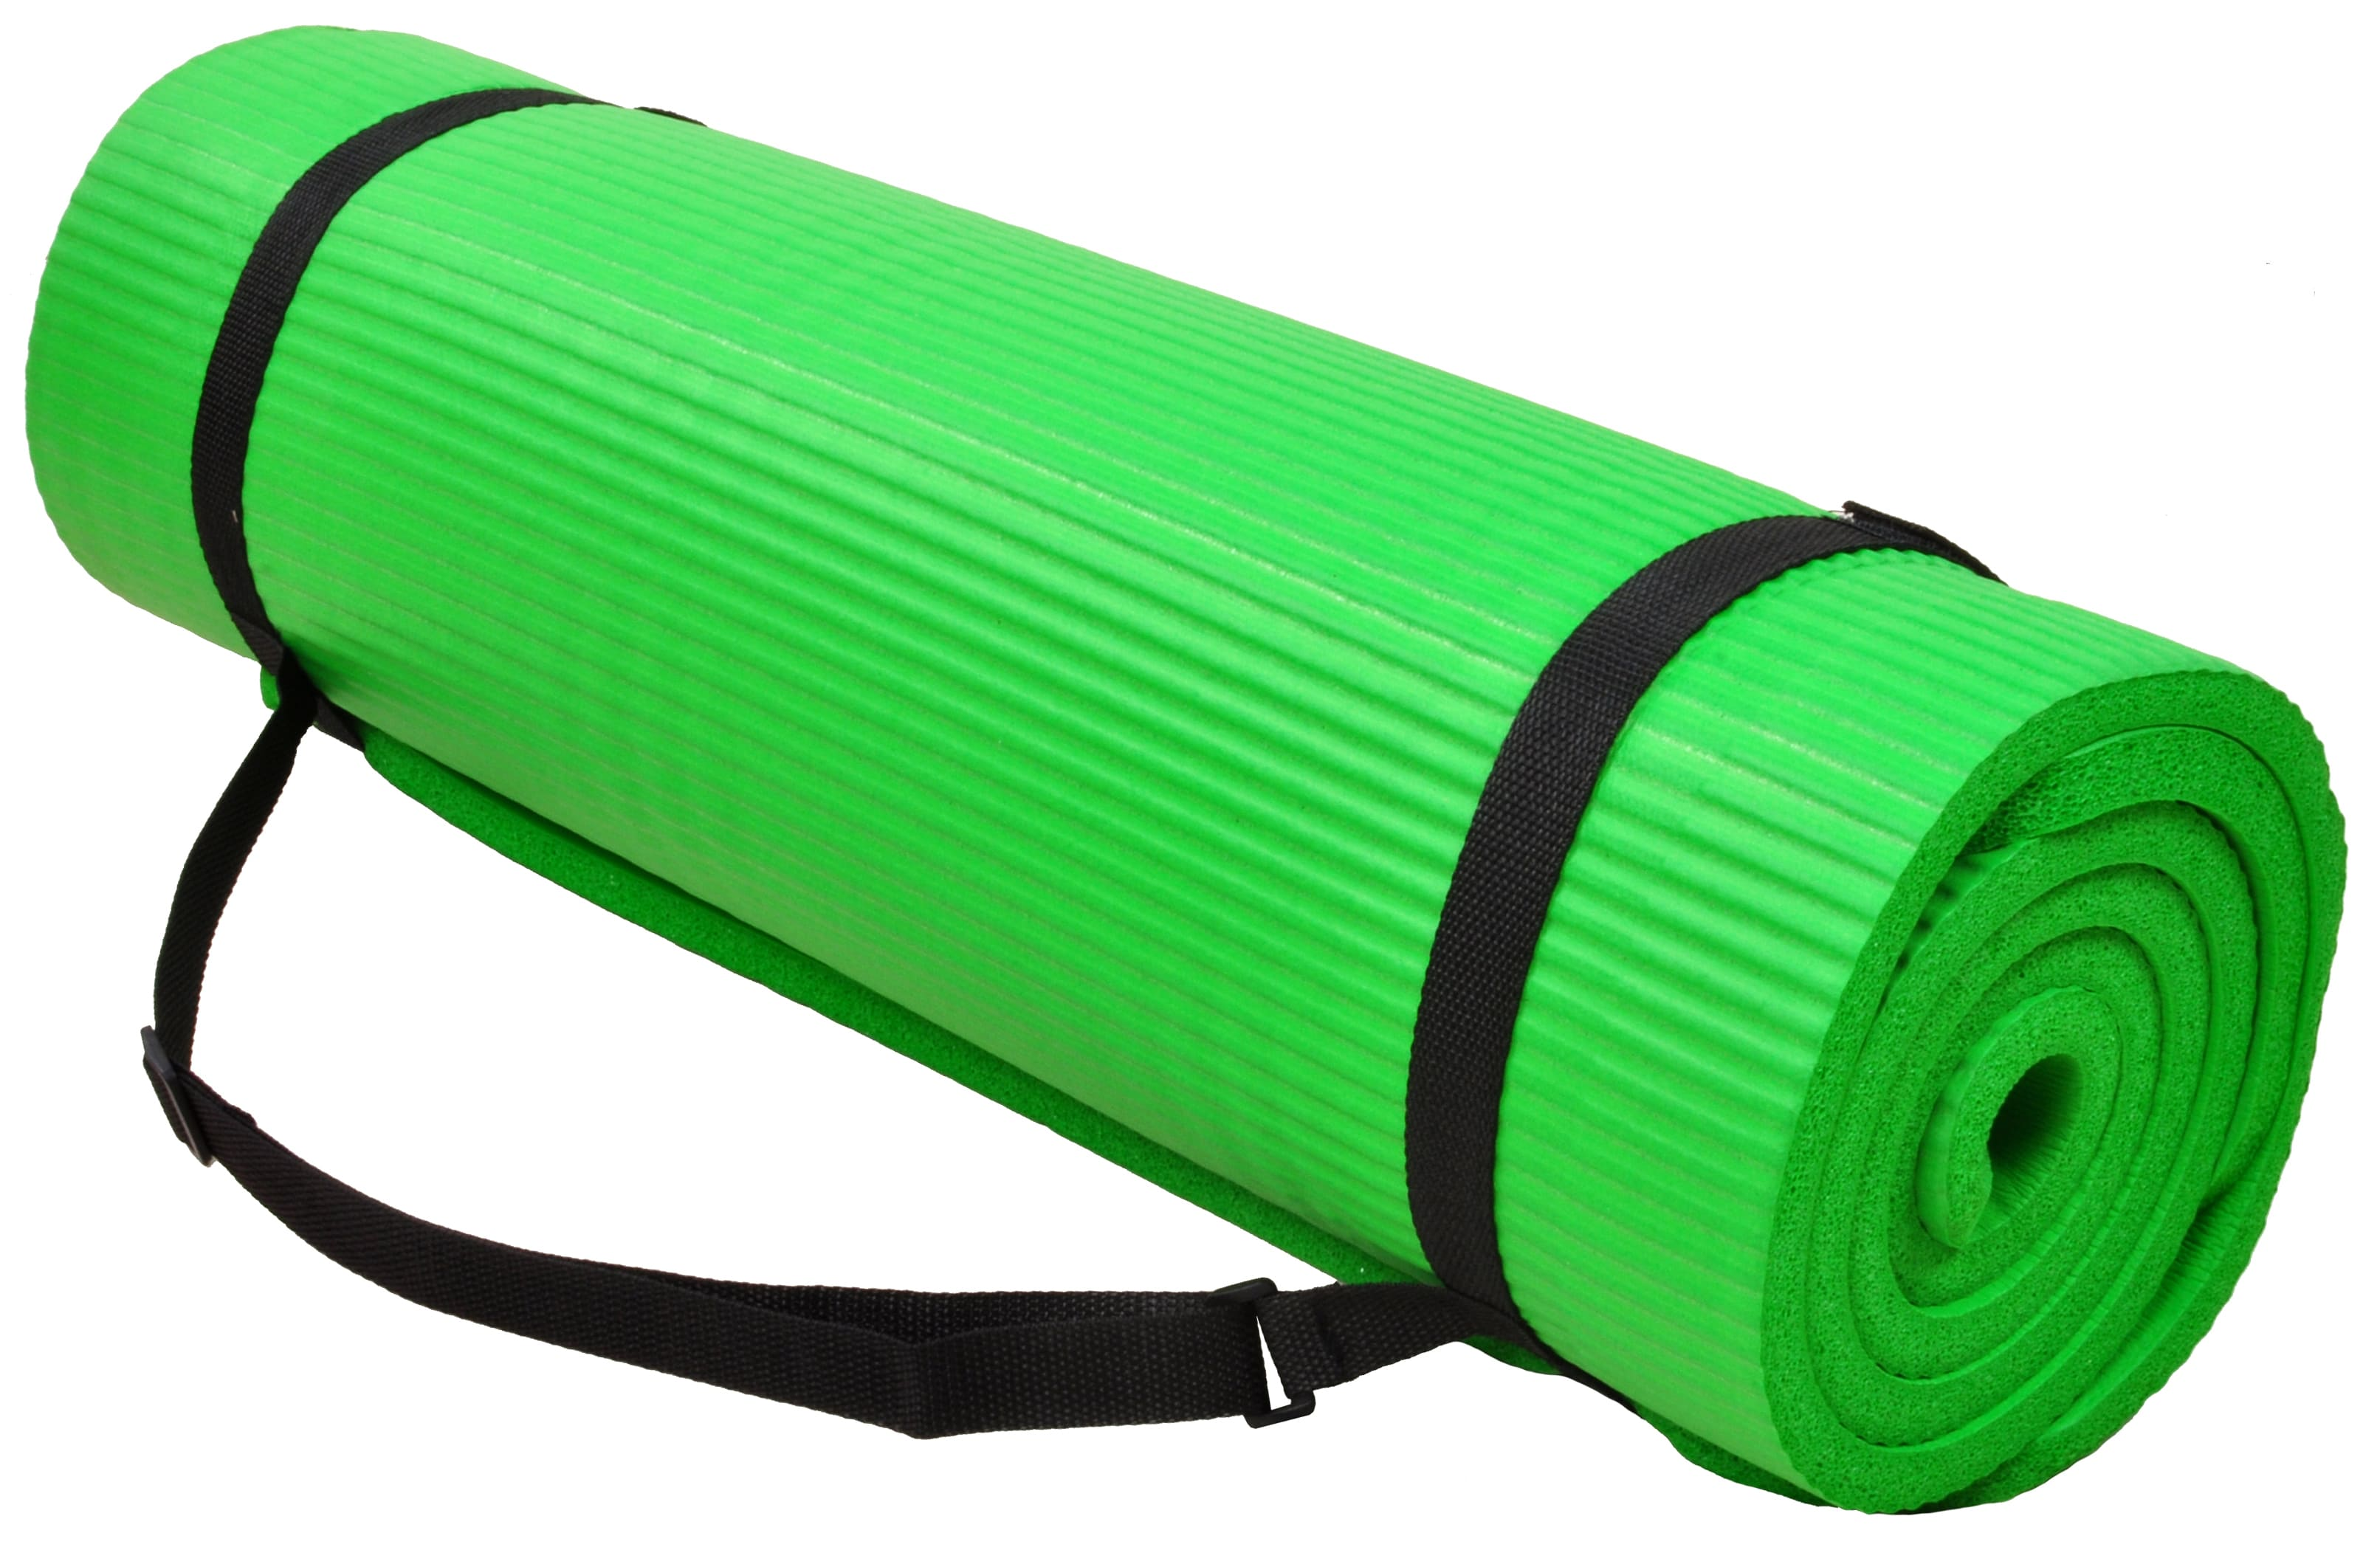 [US Direct] Original BalanceFrom GoYoga+ All-Purpose 1/2-Inch Extra Thick High Density Anti-Tear Exercise Yoga Mat and Knee Pad with Carrying Strap, Blue Green